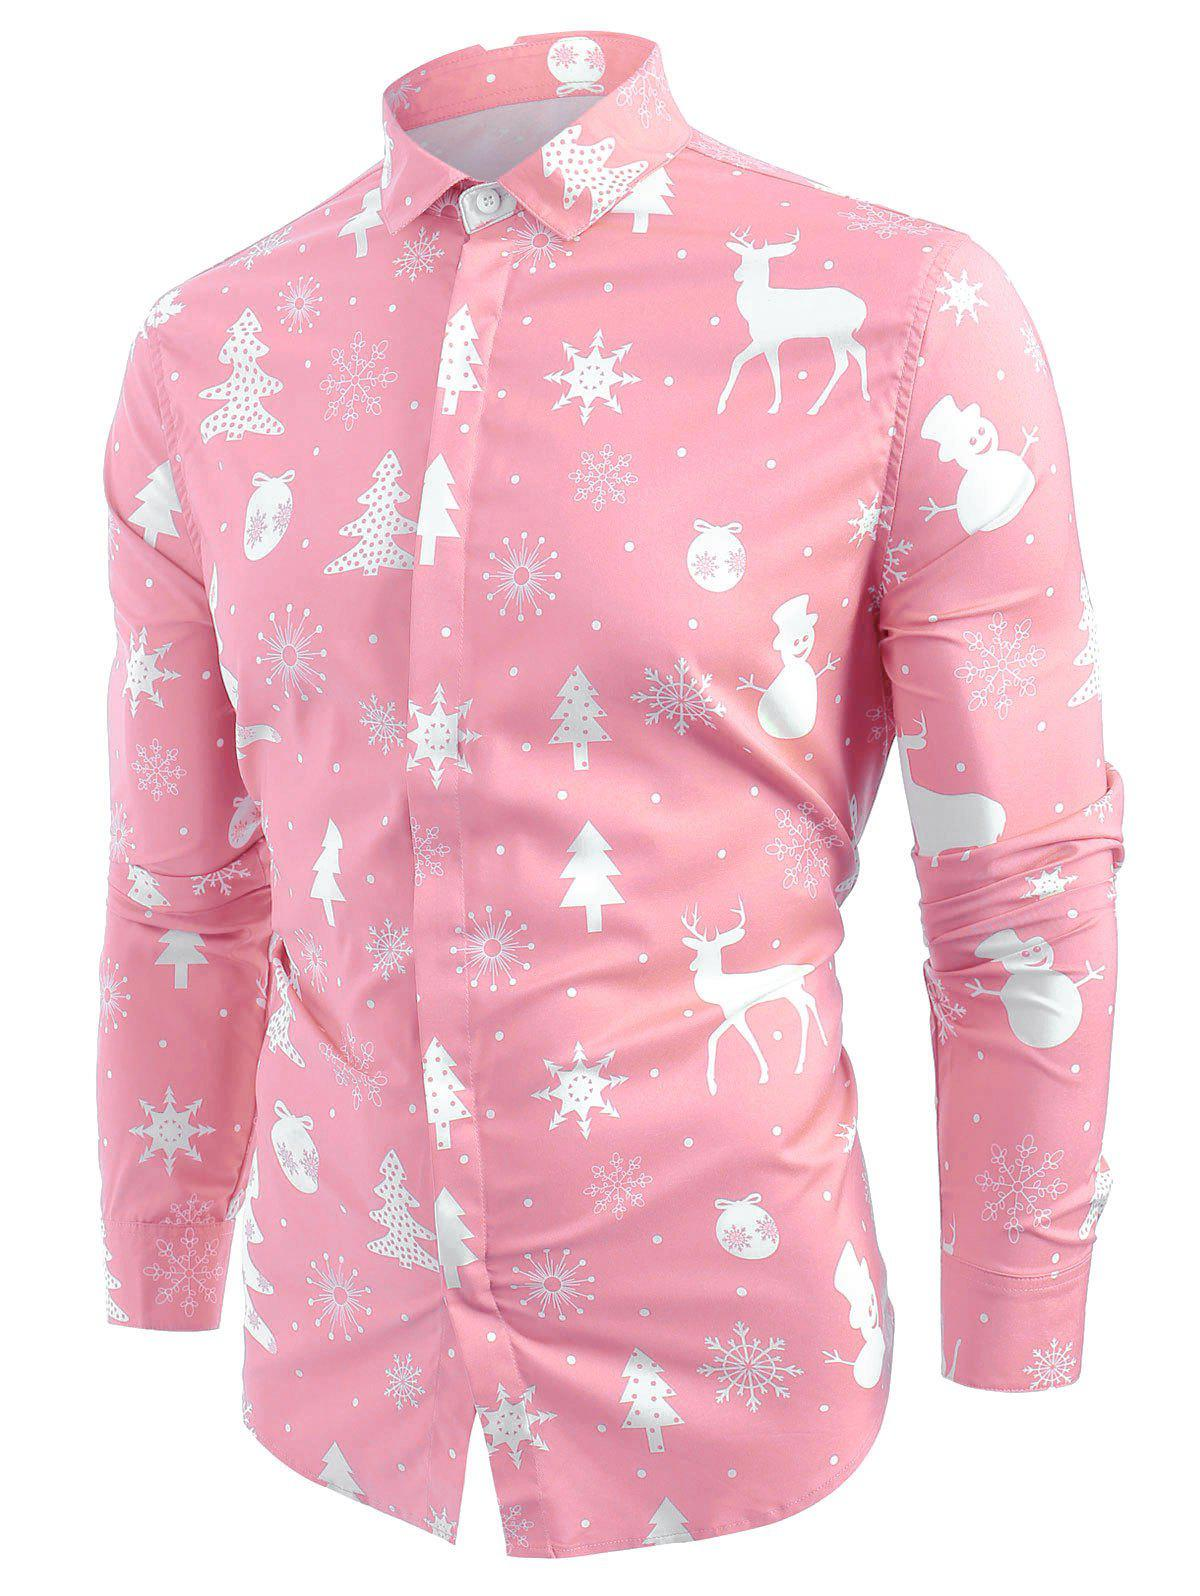 Christmas Elements Print Hem Curved Button Up Shirt - PINK S